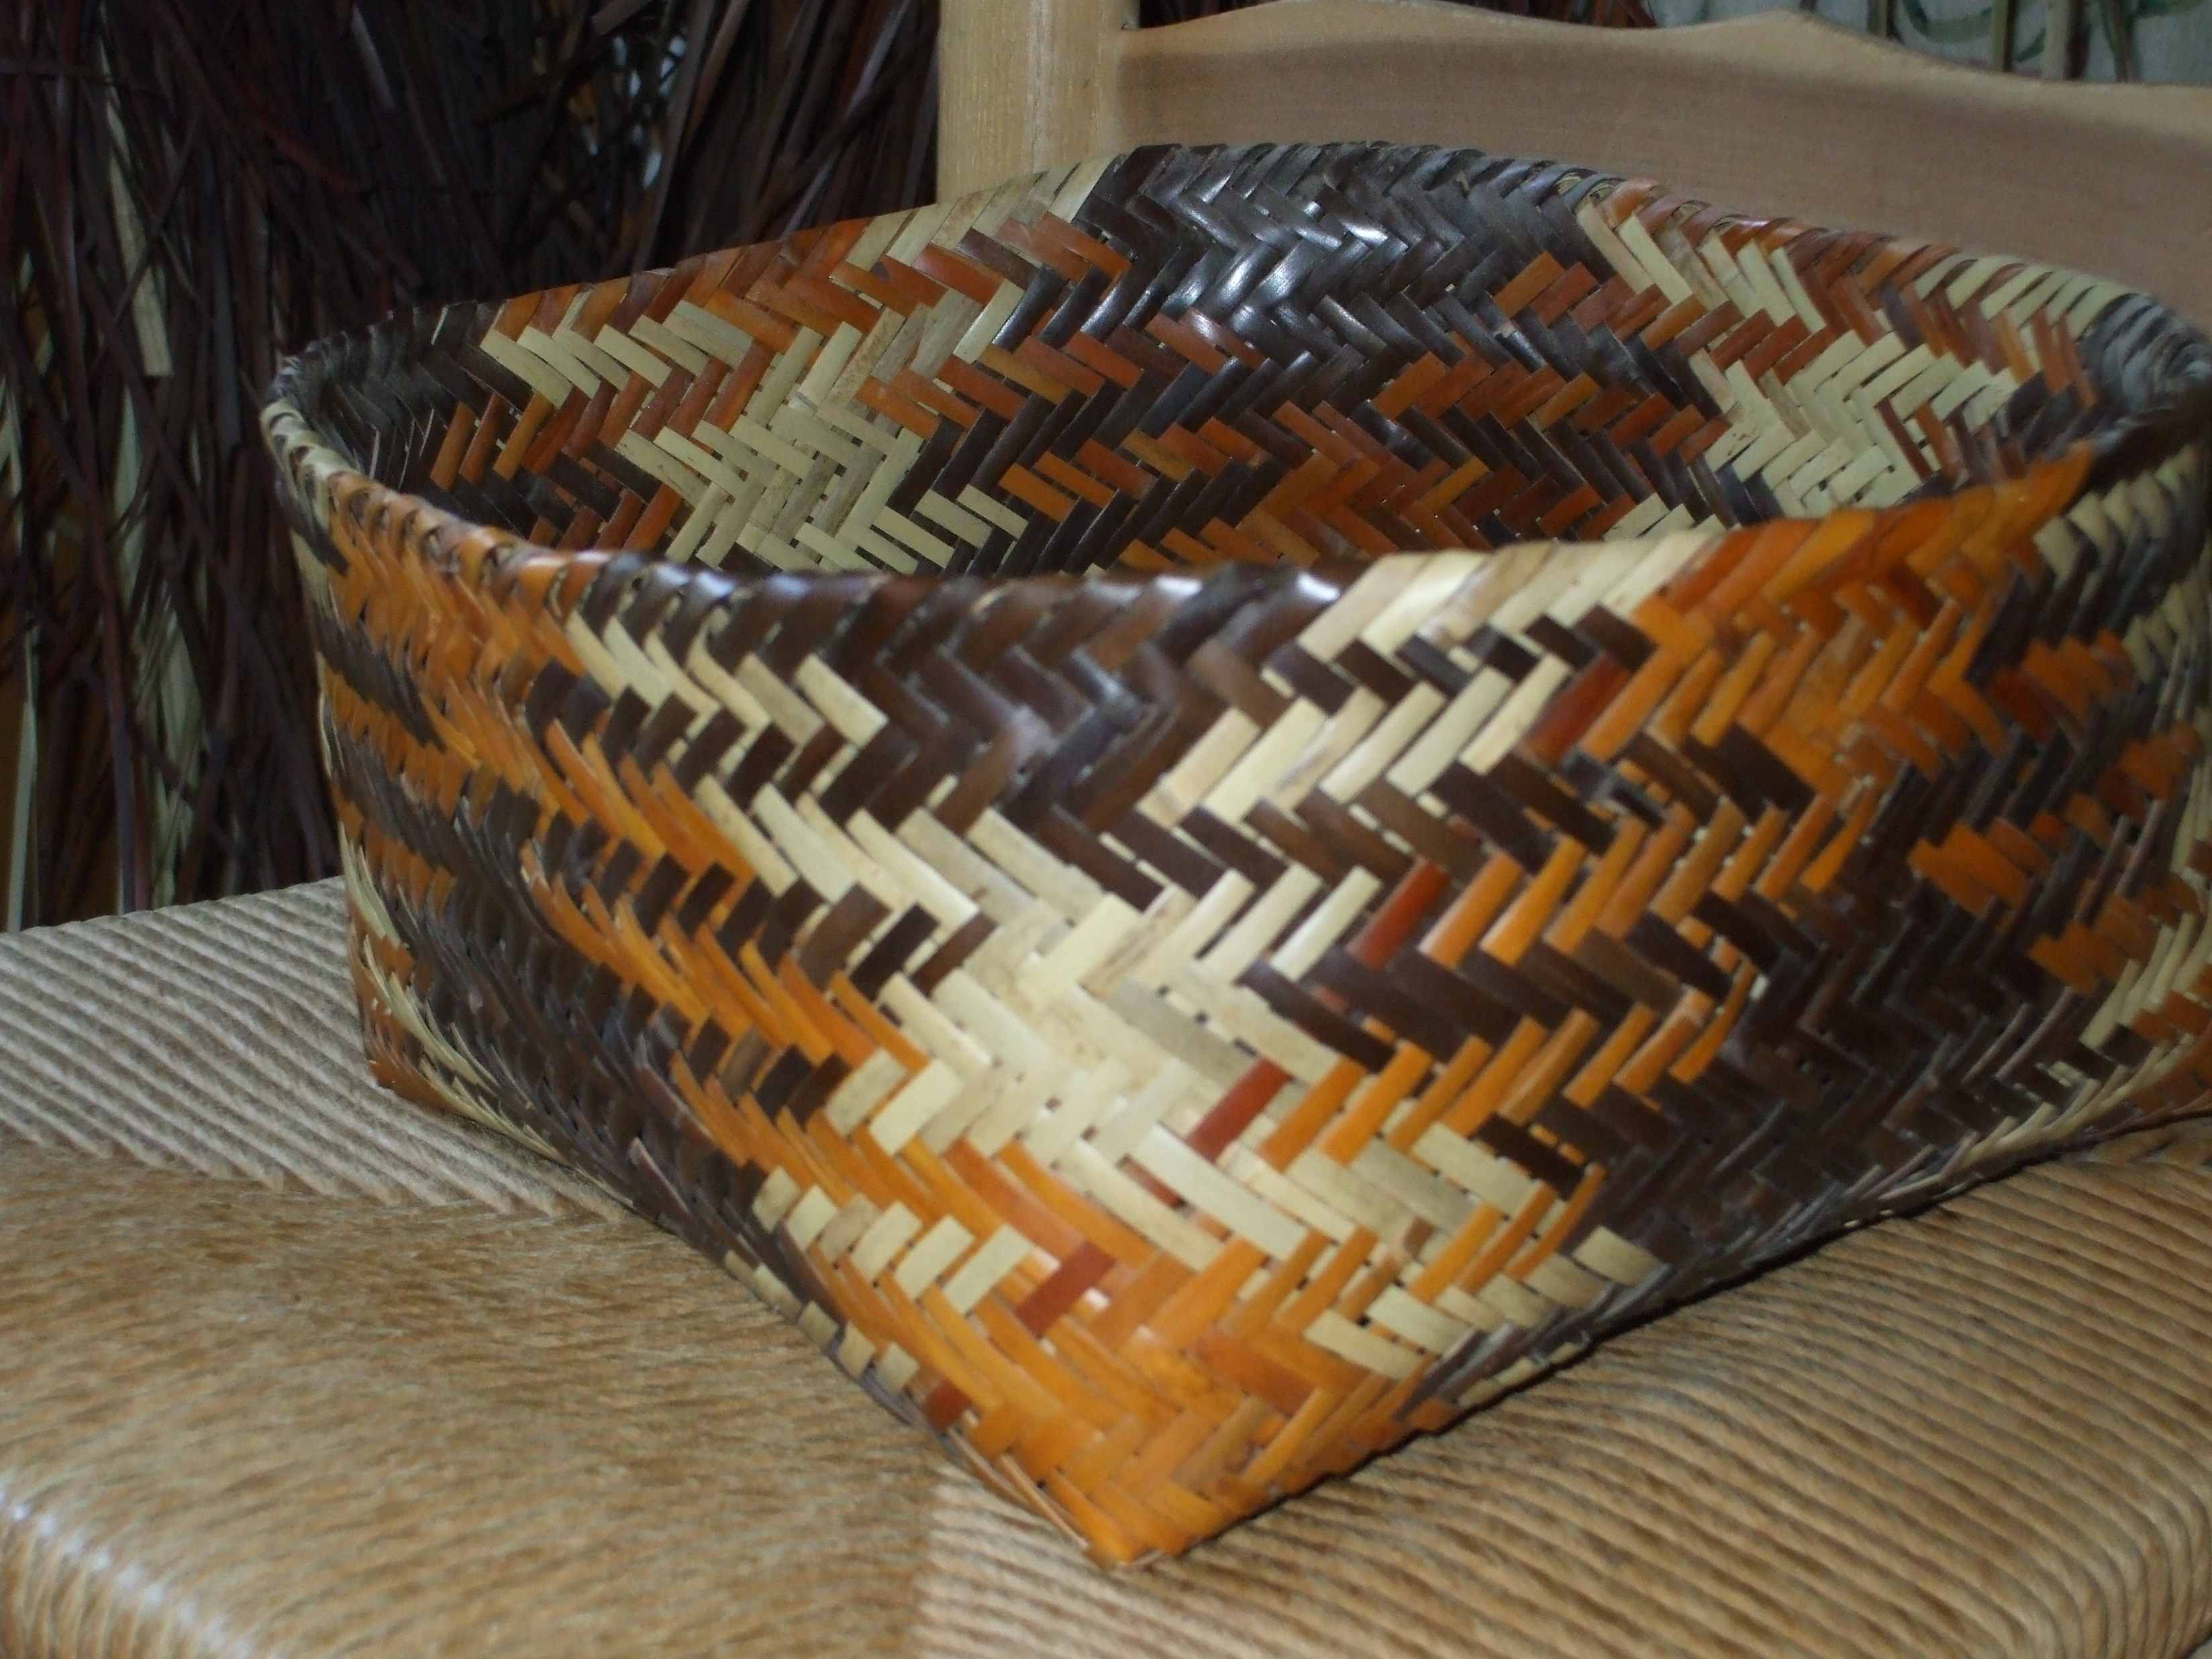 Basket Weaving Cane : Rivercane basket weaving